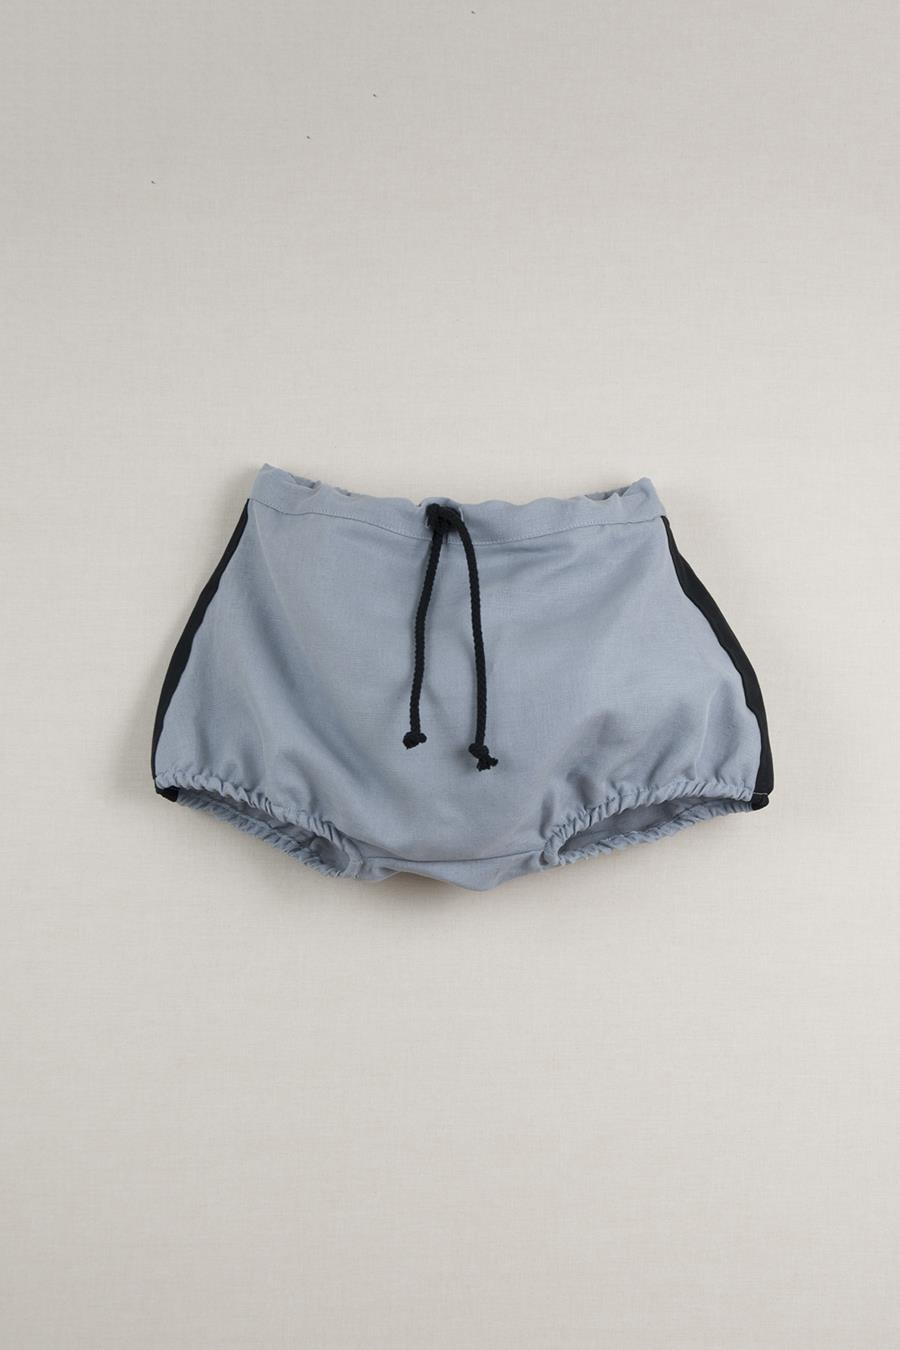 SS20Mod.8.2 Blue bloomers | SS20Mod.8.2 Blue bloomers